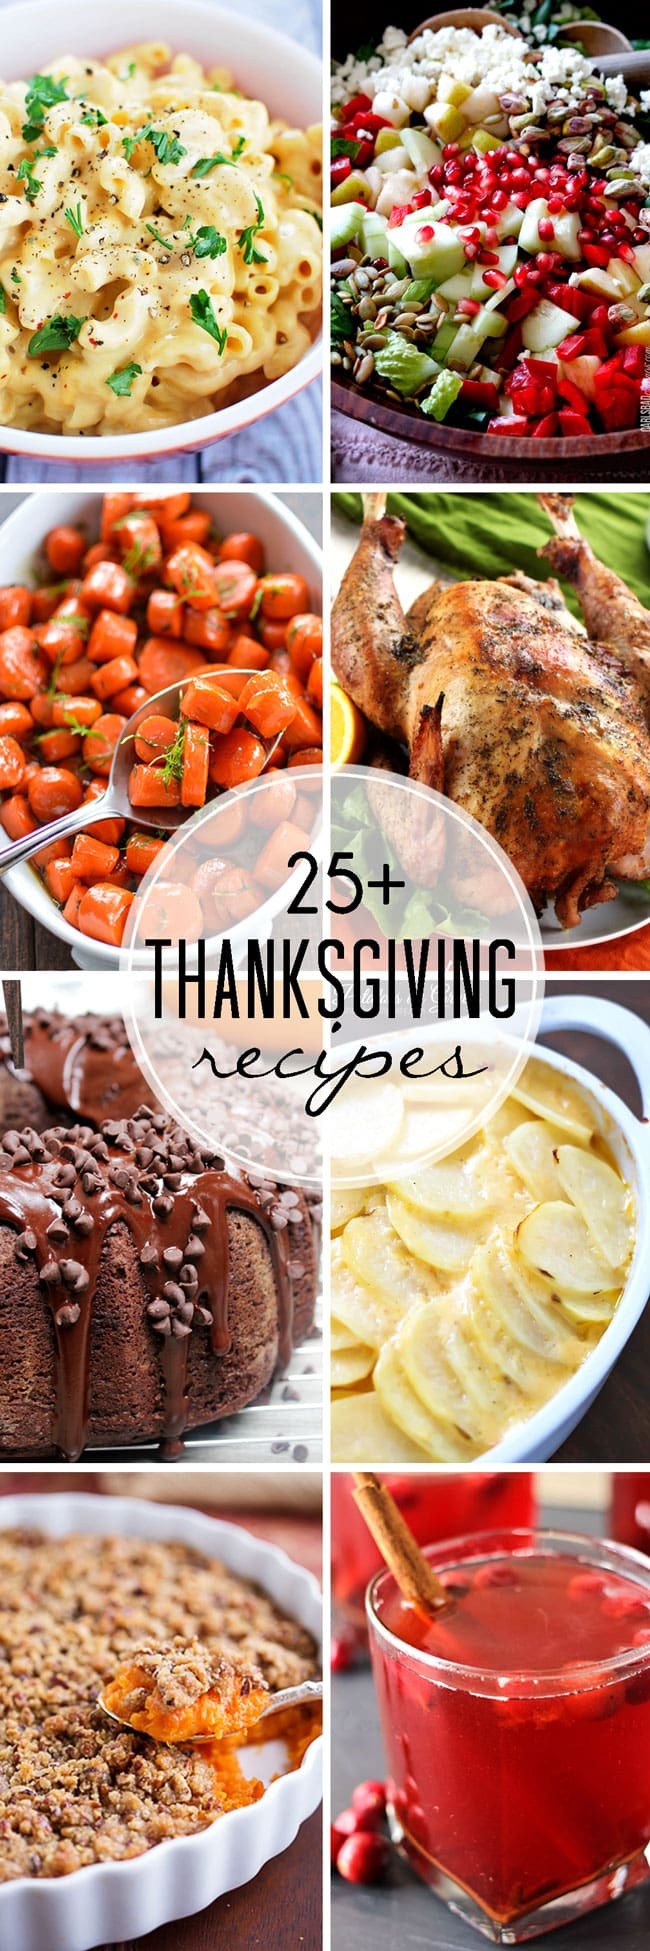 Thanksgiving Desserts Recipes  25 Thanksgiving Recipes That Skinny Chick Can Bake